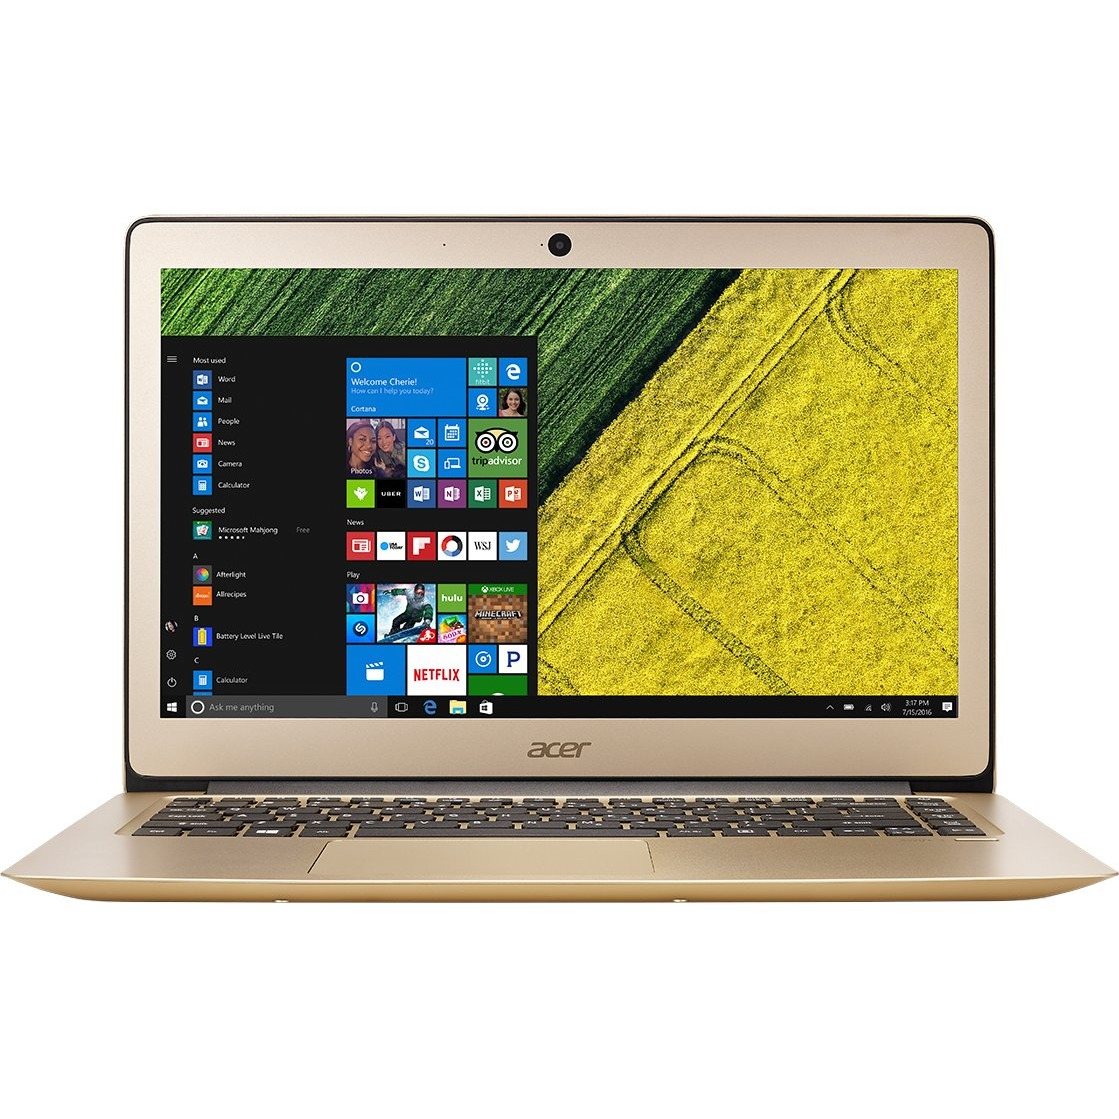 Acer Swift SF314-51-52DH Notebook